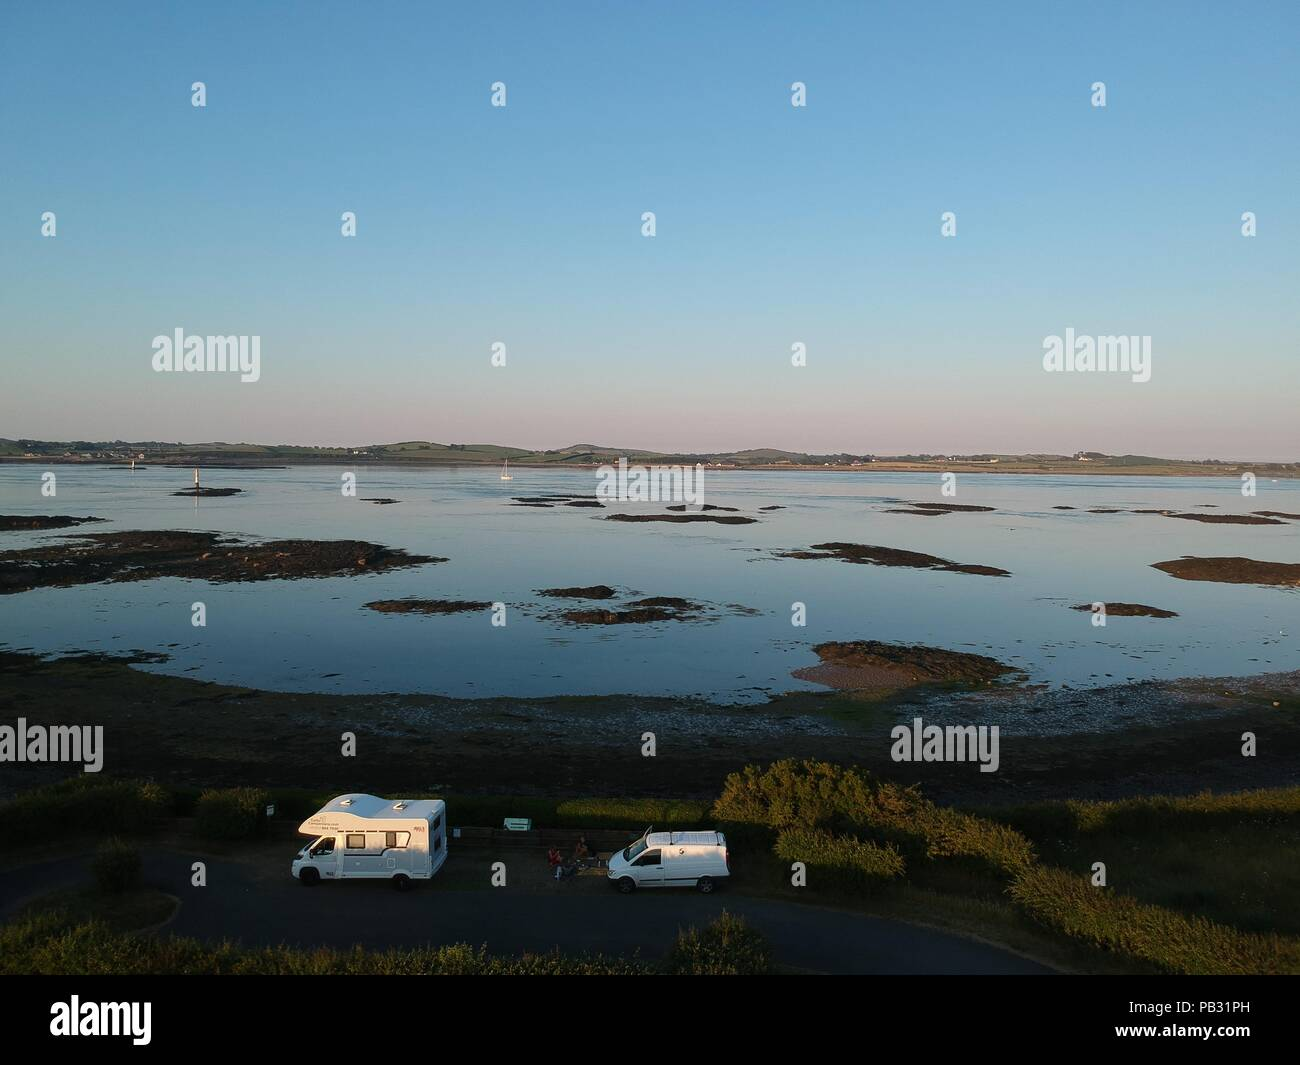 Campers by sunrise in Northern Ireland. Drone picture. - Stock Image